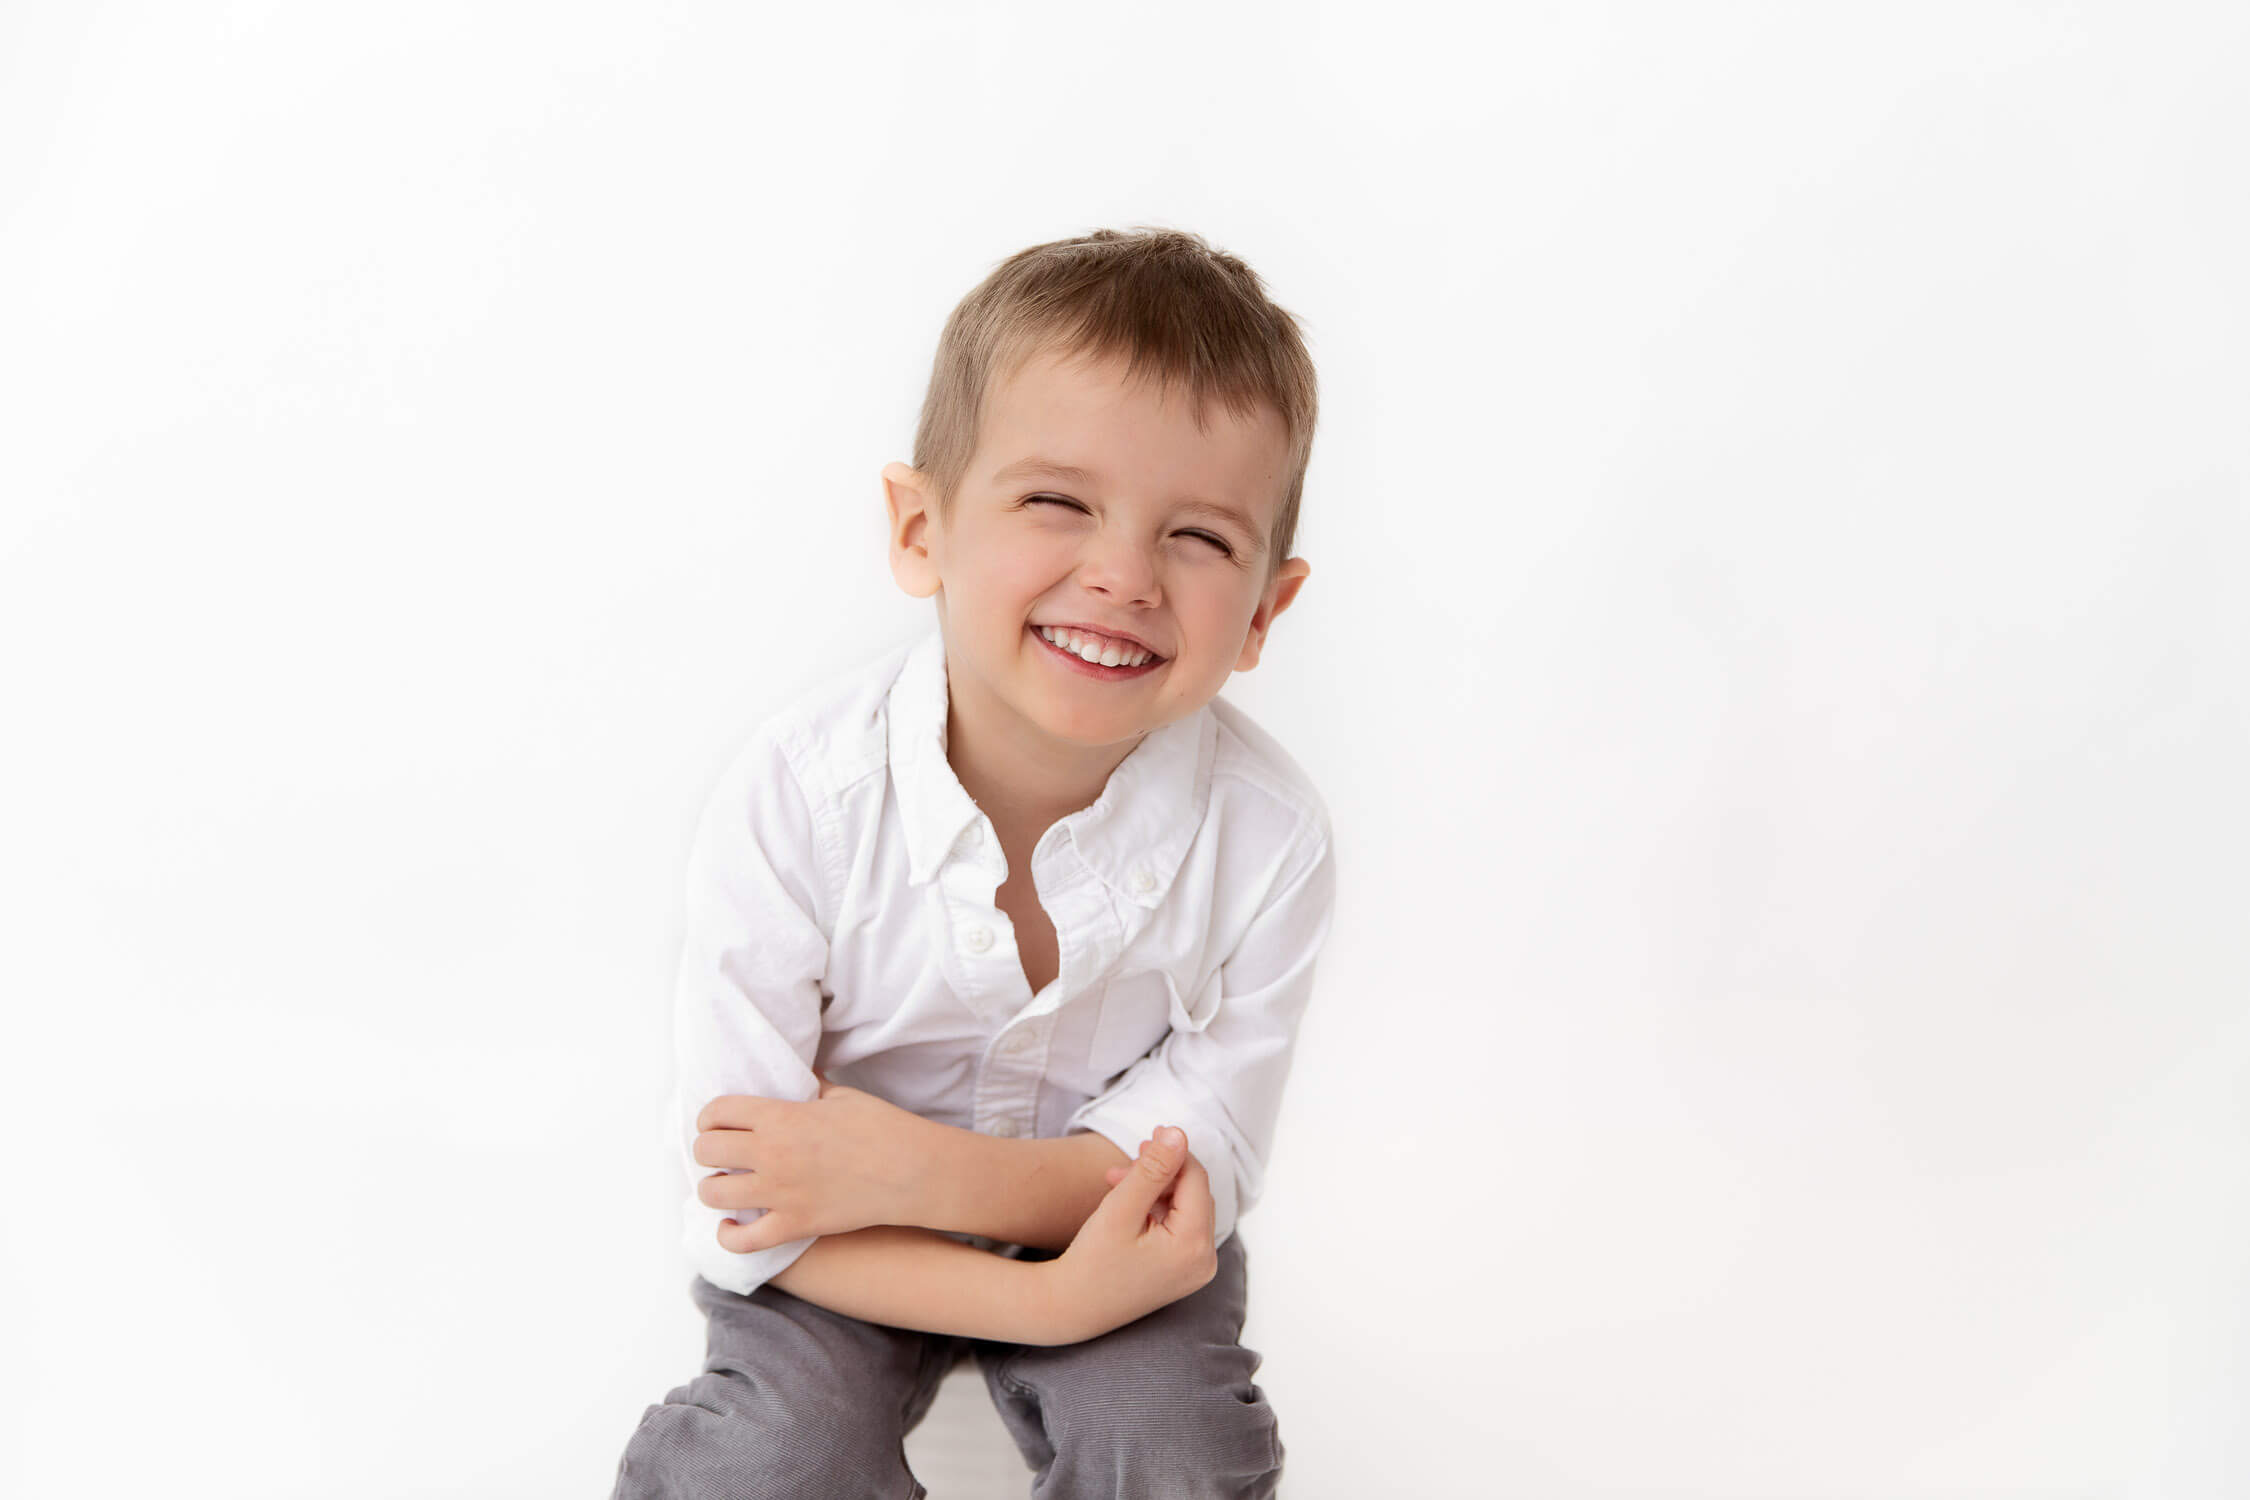 young boy with big squinty smile at camera with arms crossed